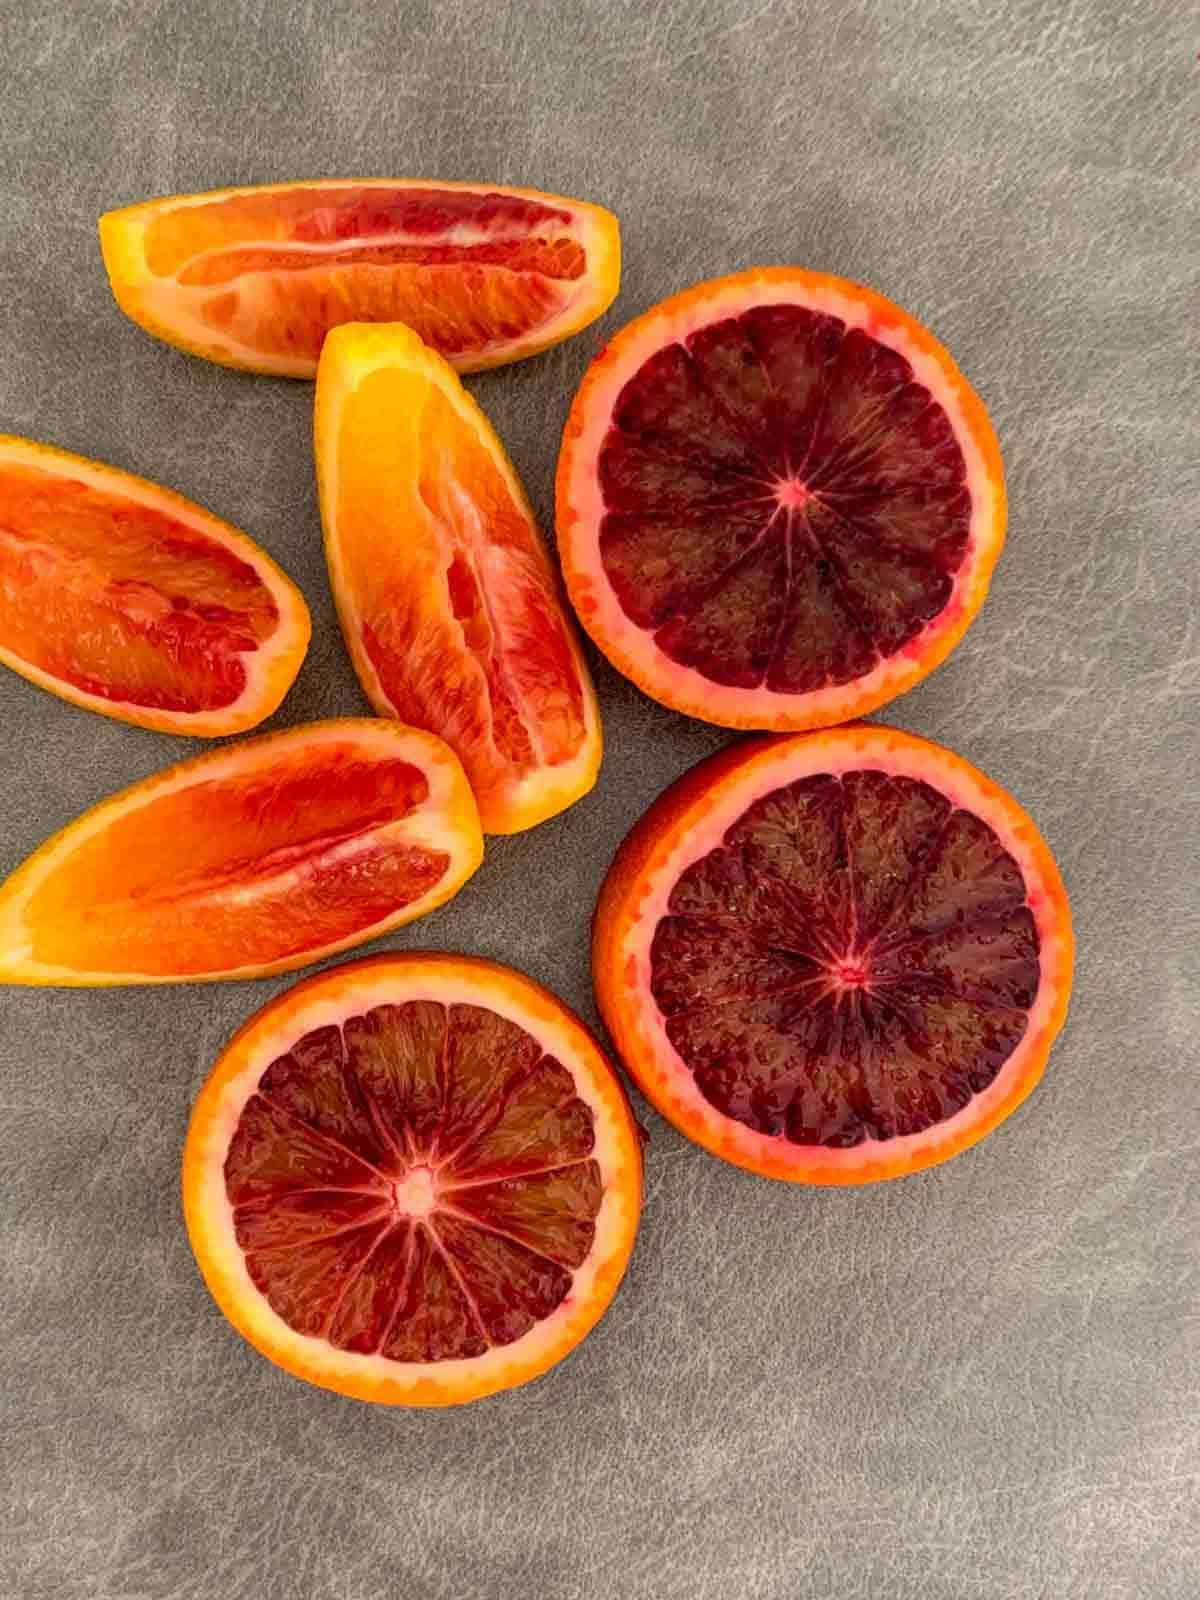 How to cut blood oranges